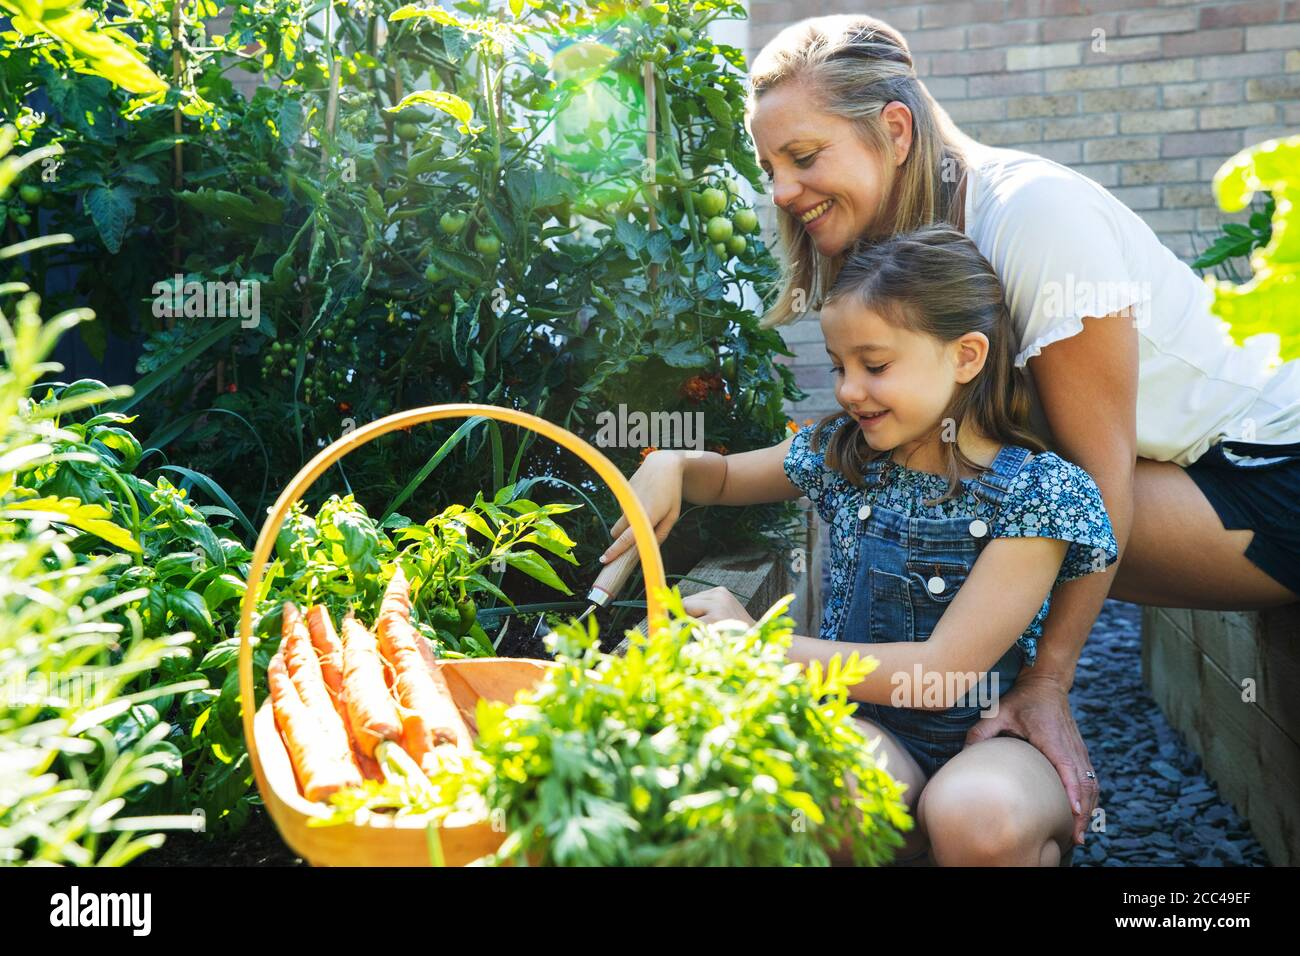 Mother And Daughter Digging In Raised Vegetable Beds At Home Stock Photo